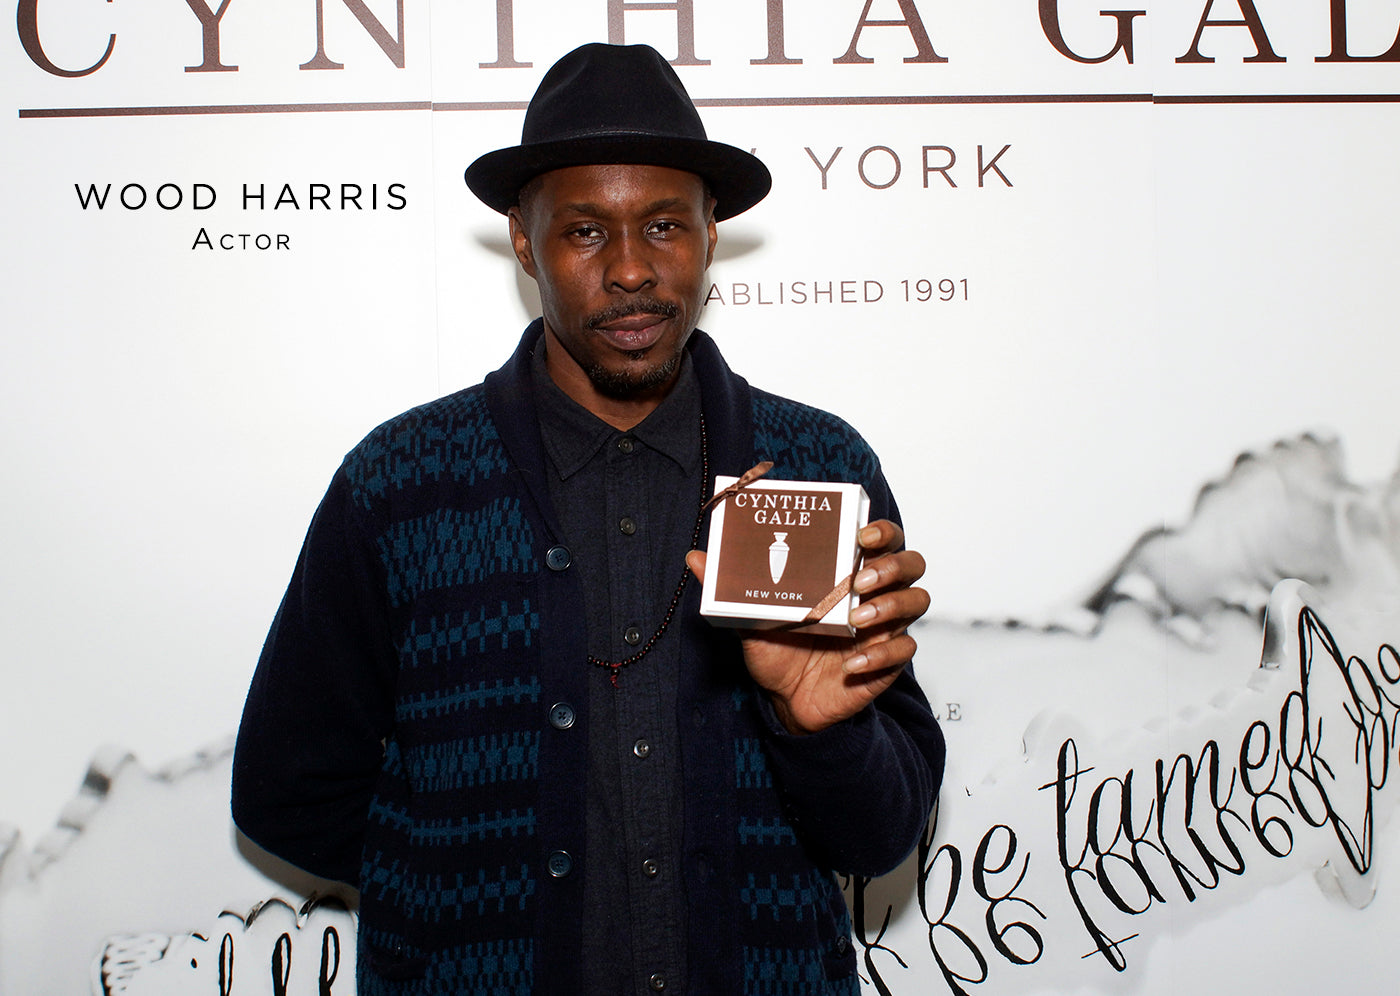 Wood Harris fashion style